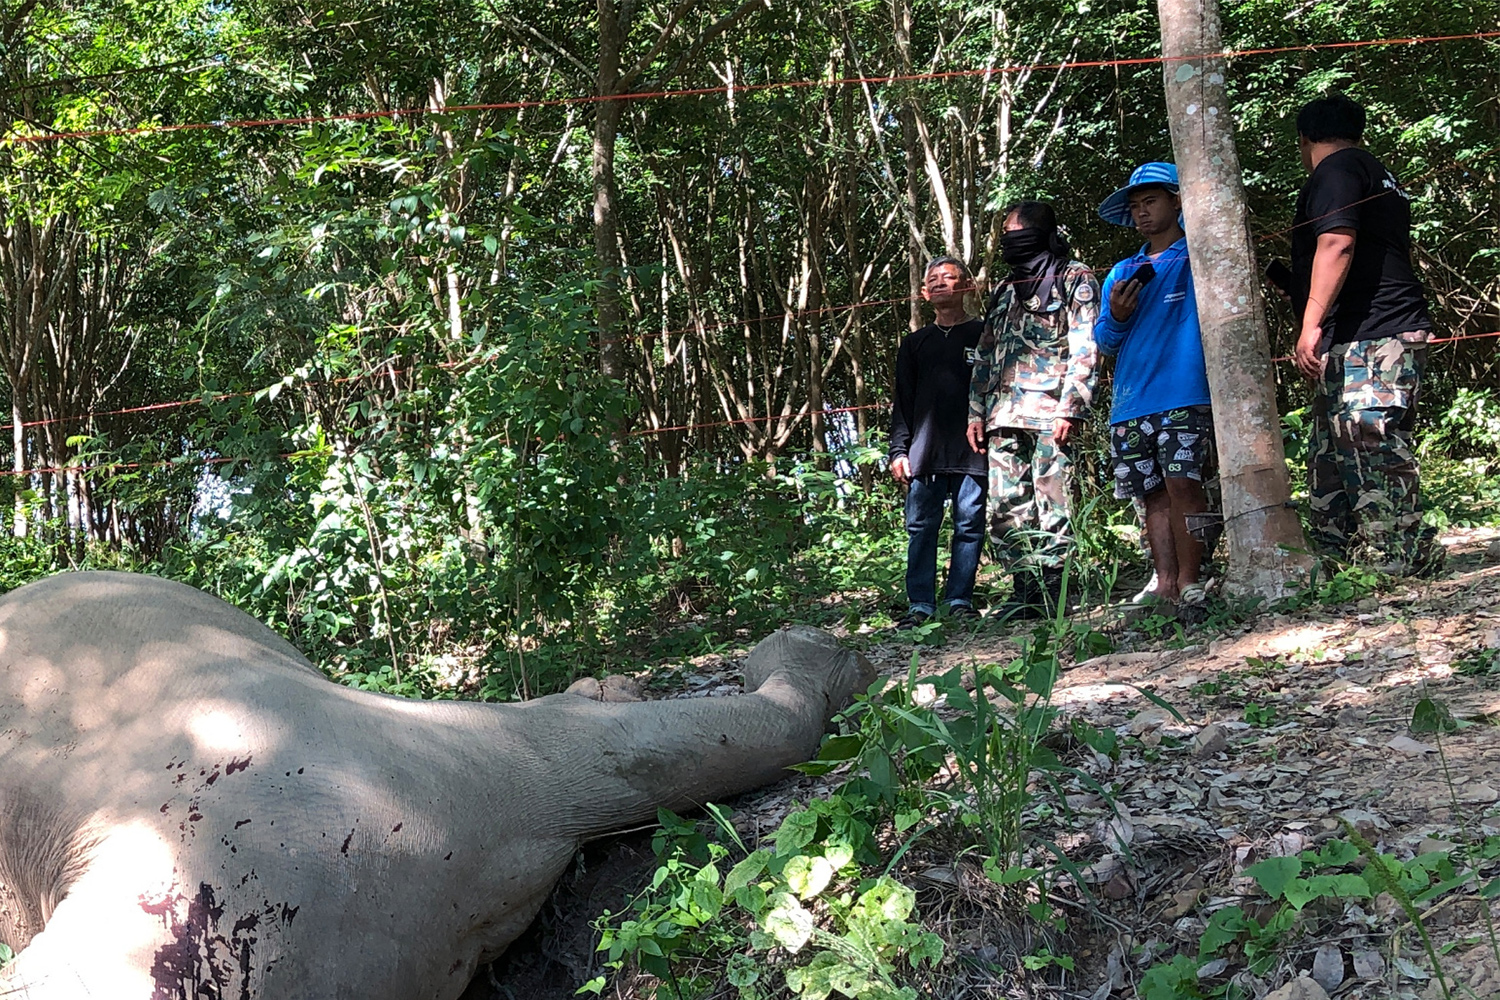 Rangers look at the body of a wild elephant found dead in Kui Buri National Park in Kui Buri district of Prachuap Khiri Khan on Saturday. (Photo by Chaiwat Satyaem)